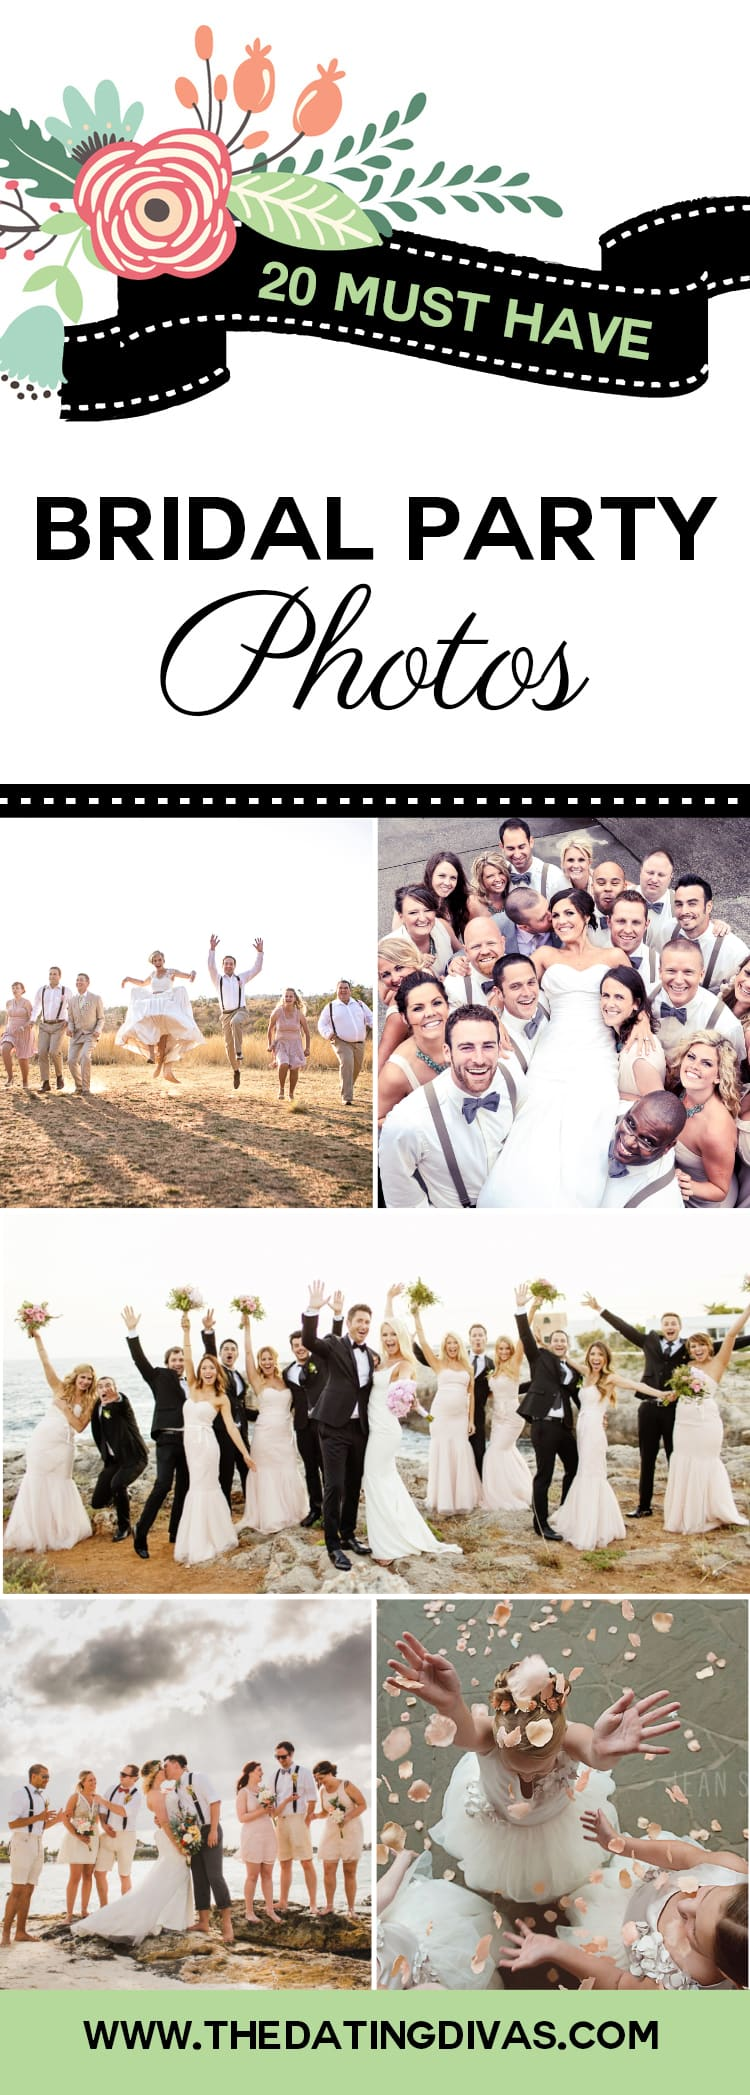 Must-Have Bridal Party Photos